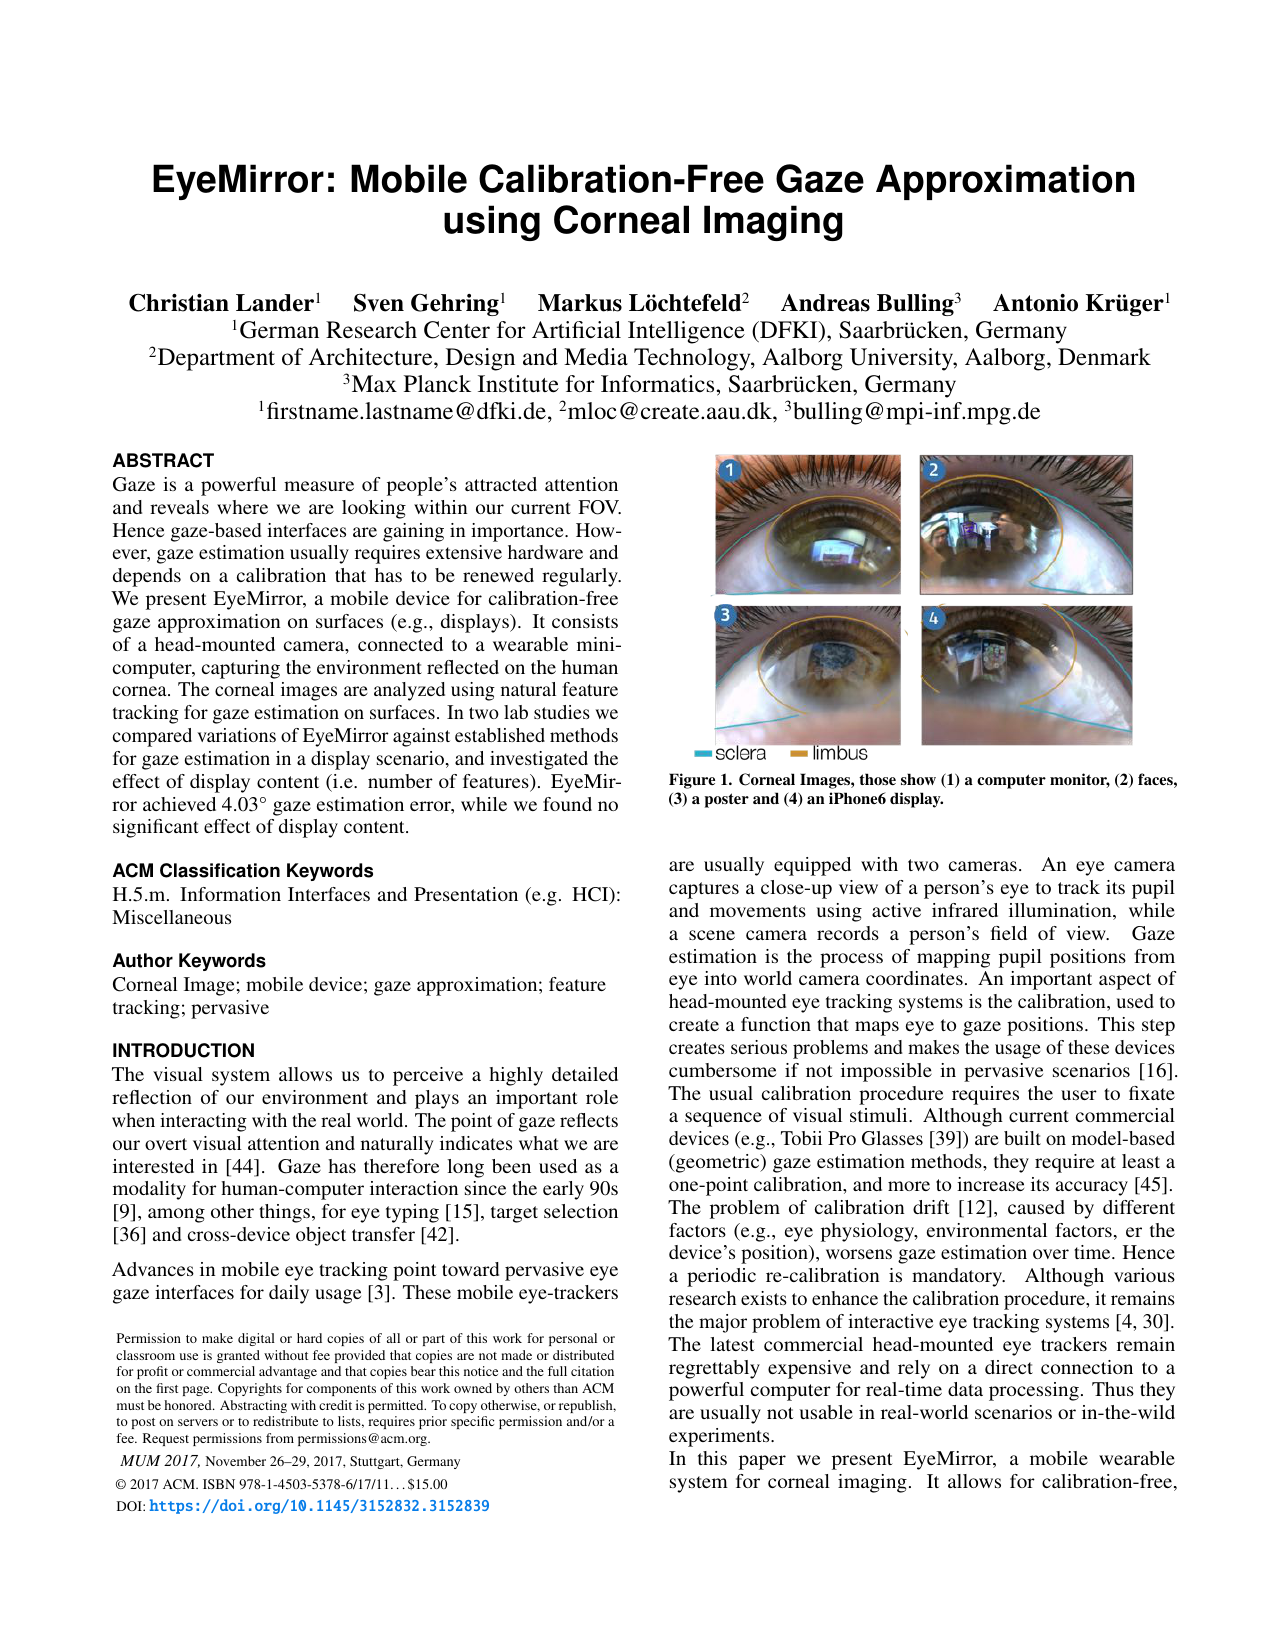 EyeMirror: Mobile Calibration-Free Gaze Approximation using Corneal Imaging